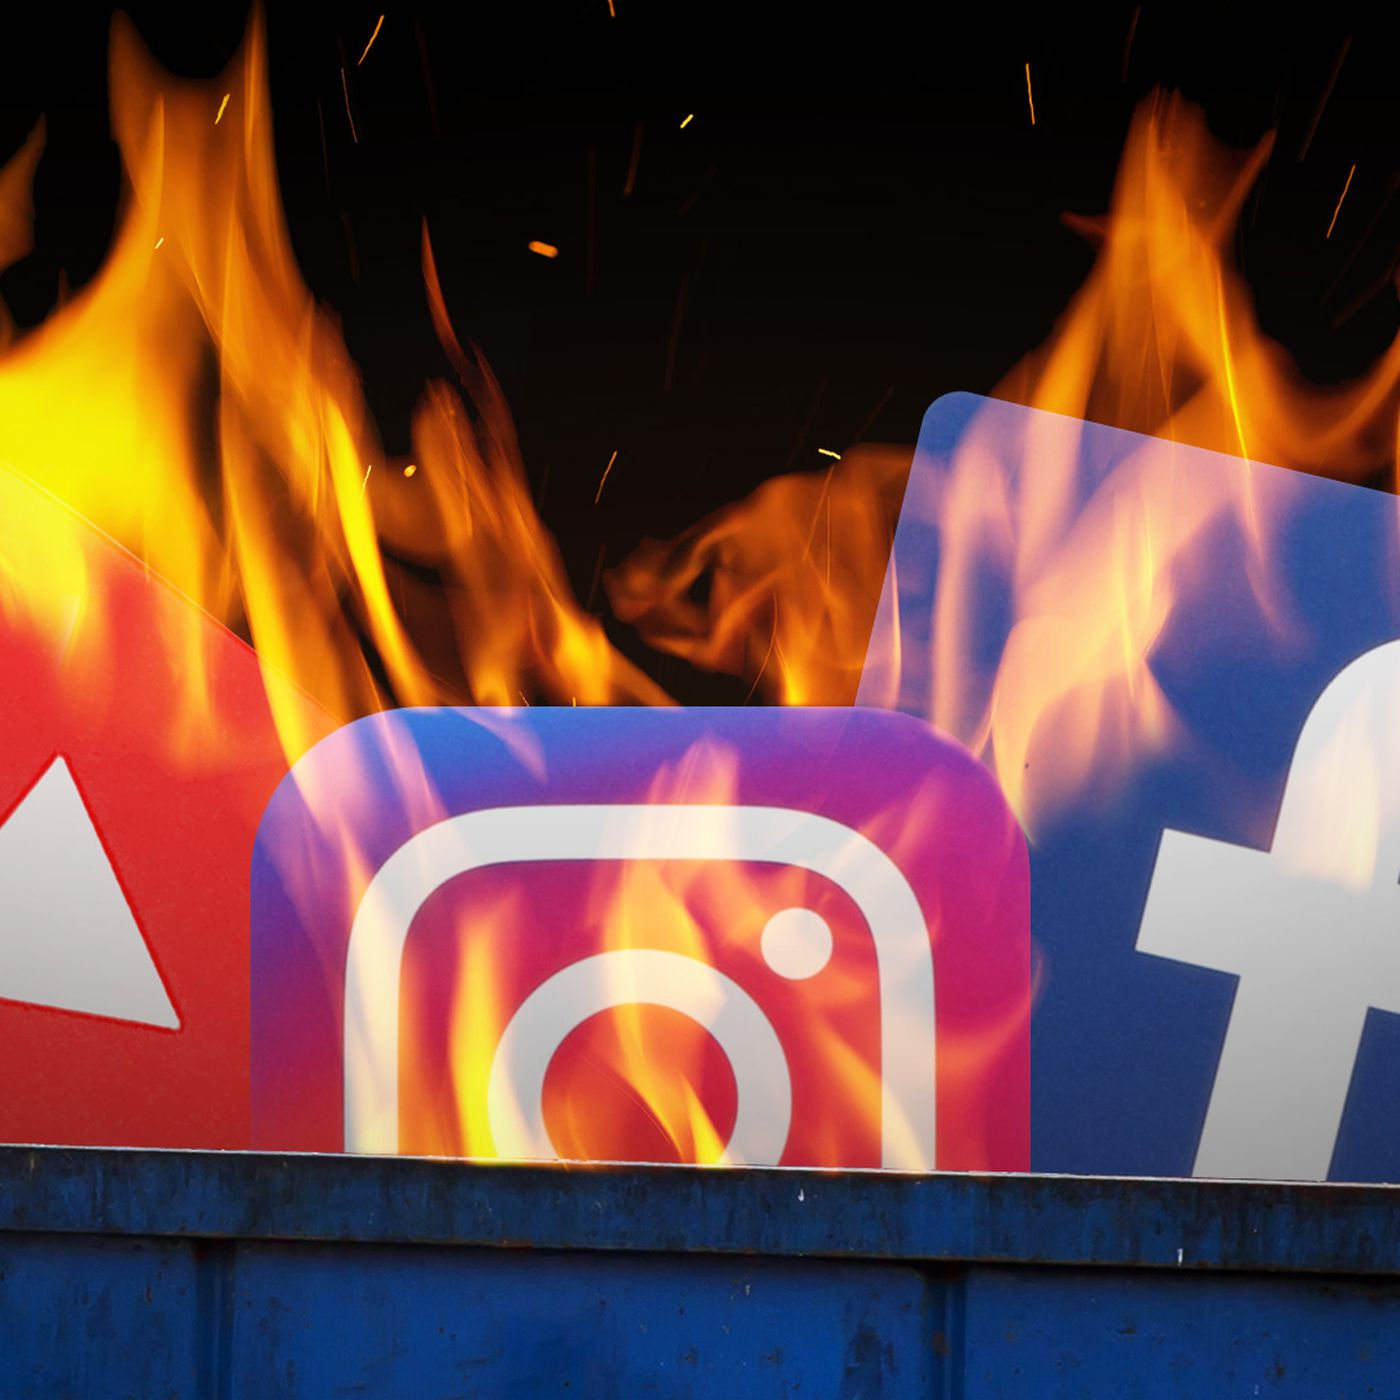 vox.com - Carlos Maza - Why every social media site is a dumpster fire